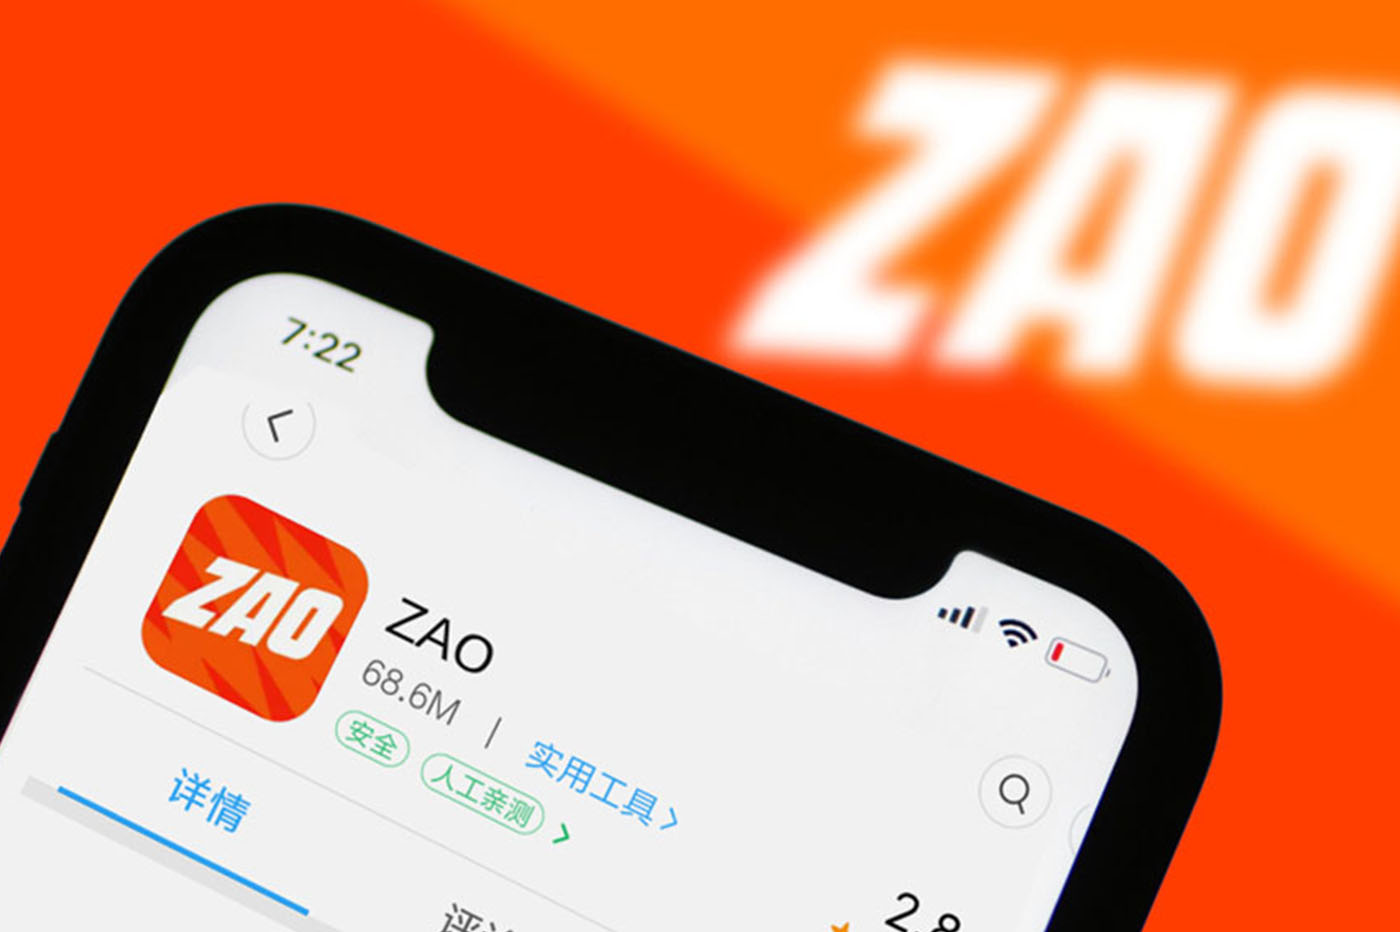 ZAO application